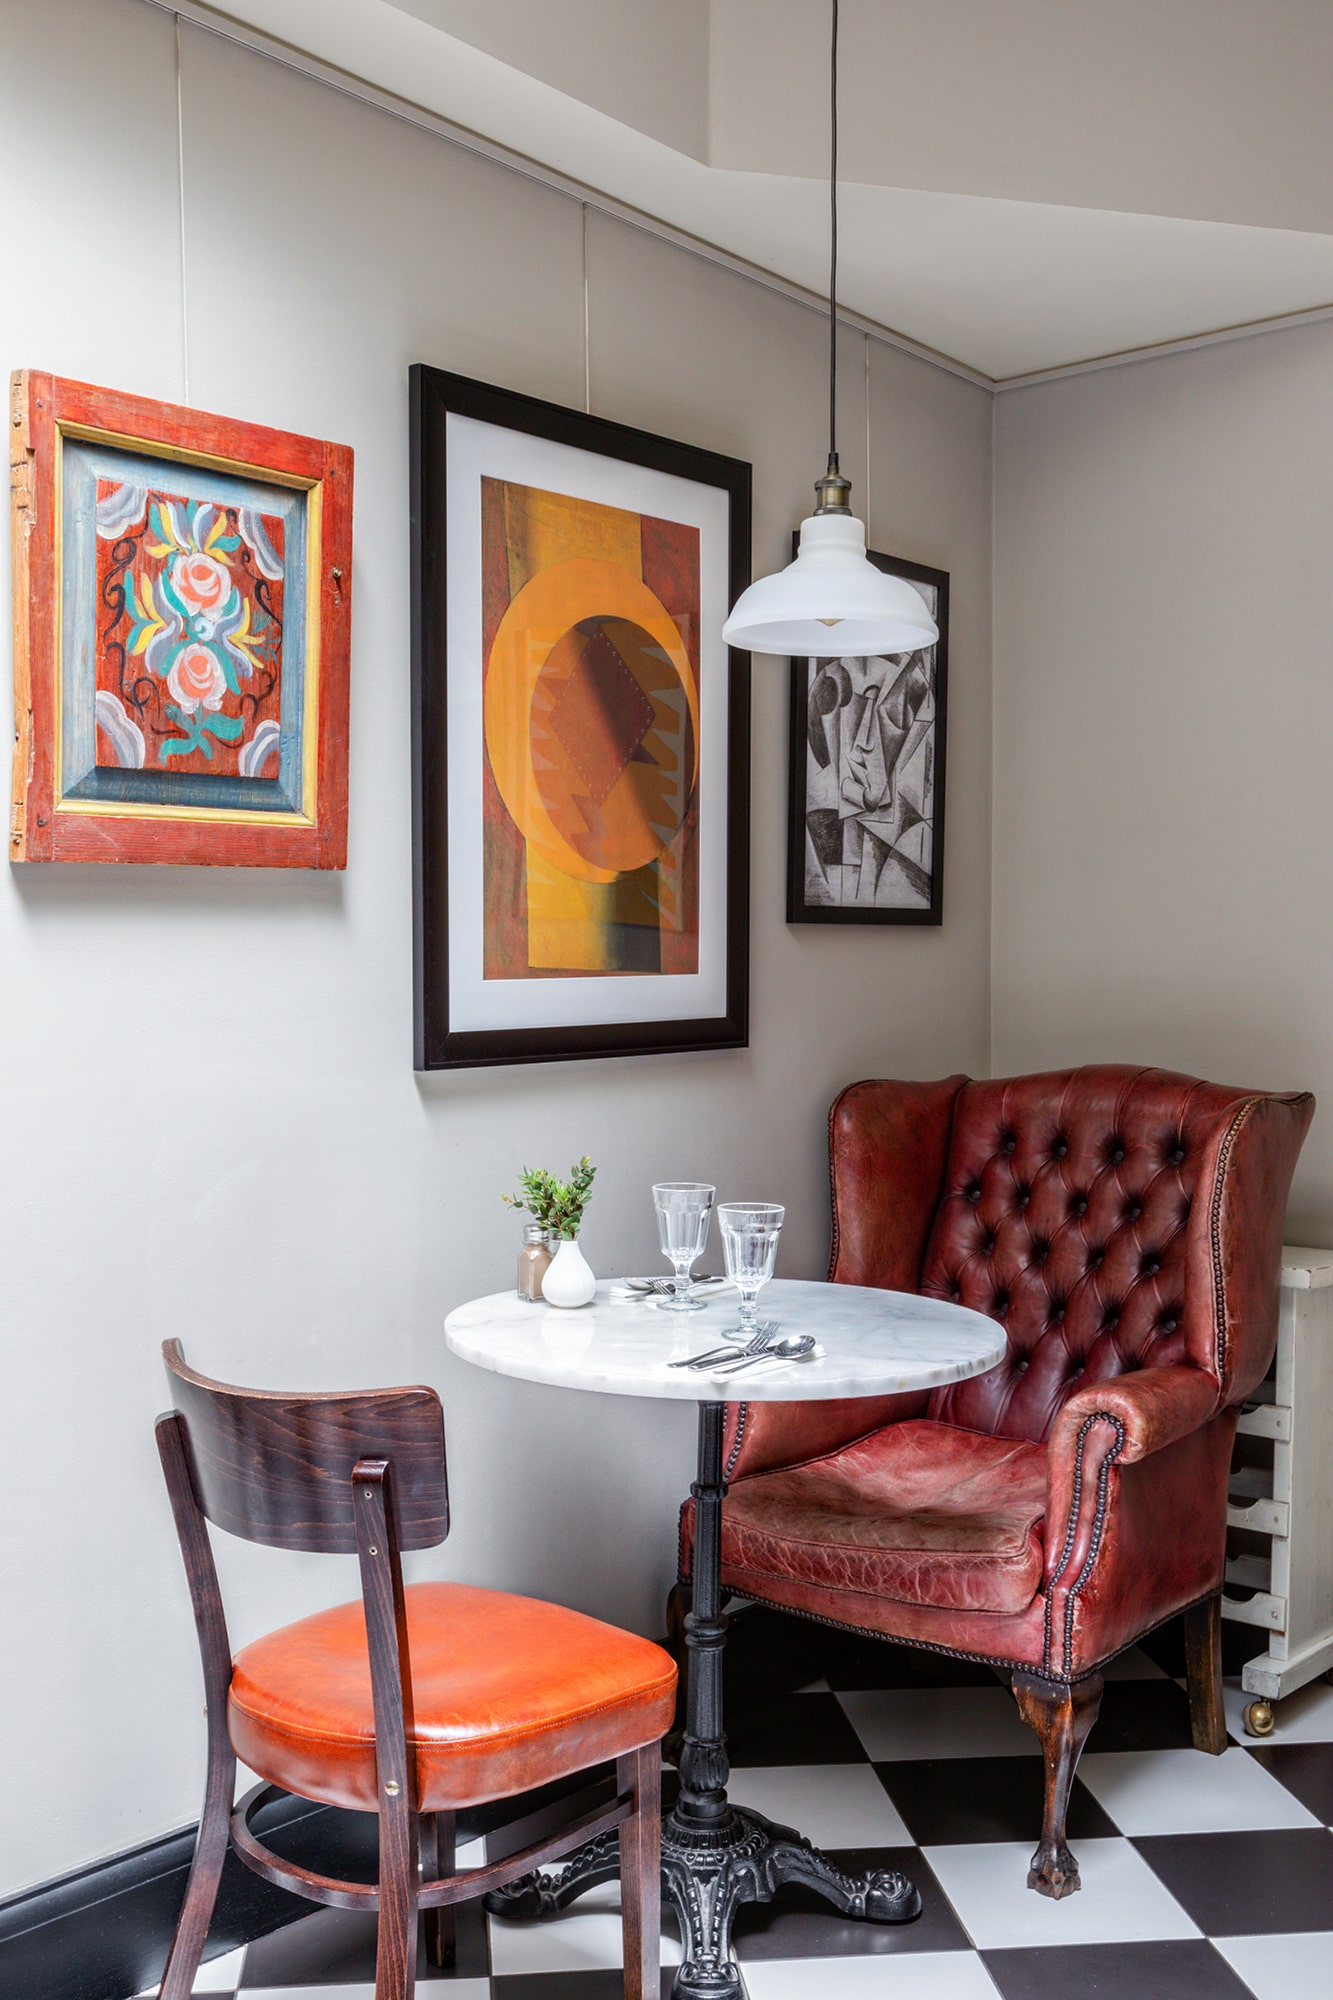 Interior photo of a Russian restaurant: modern art prints; round table, a leather armchair and a wooden chair